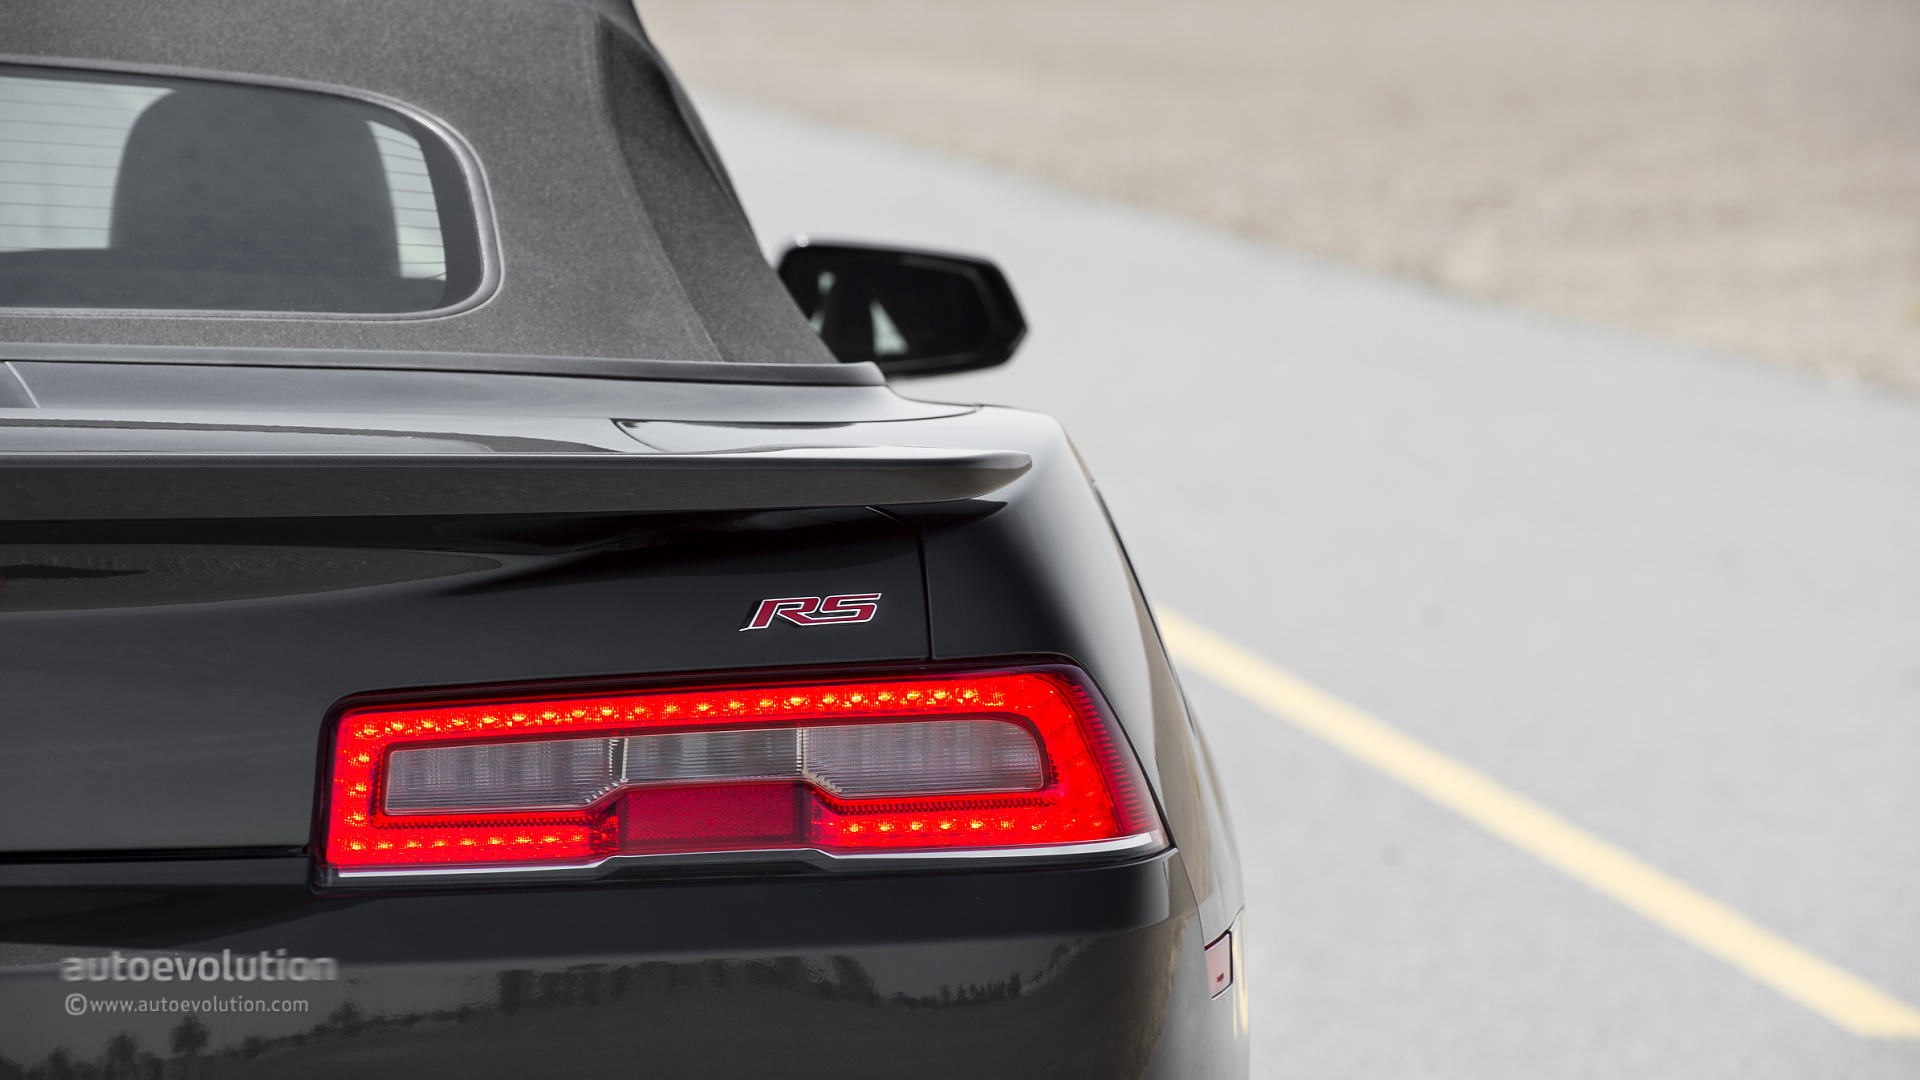 2014 rs camaro tail lights autos post. Cars Review. Best American Auto & Cars Review